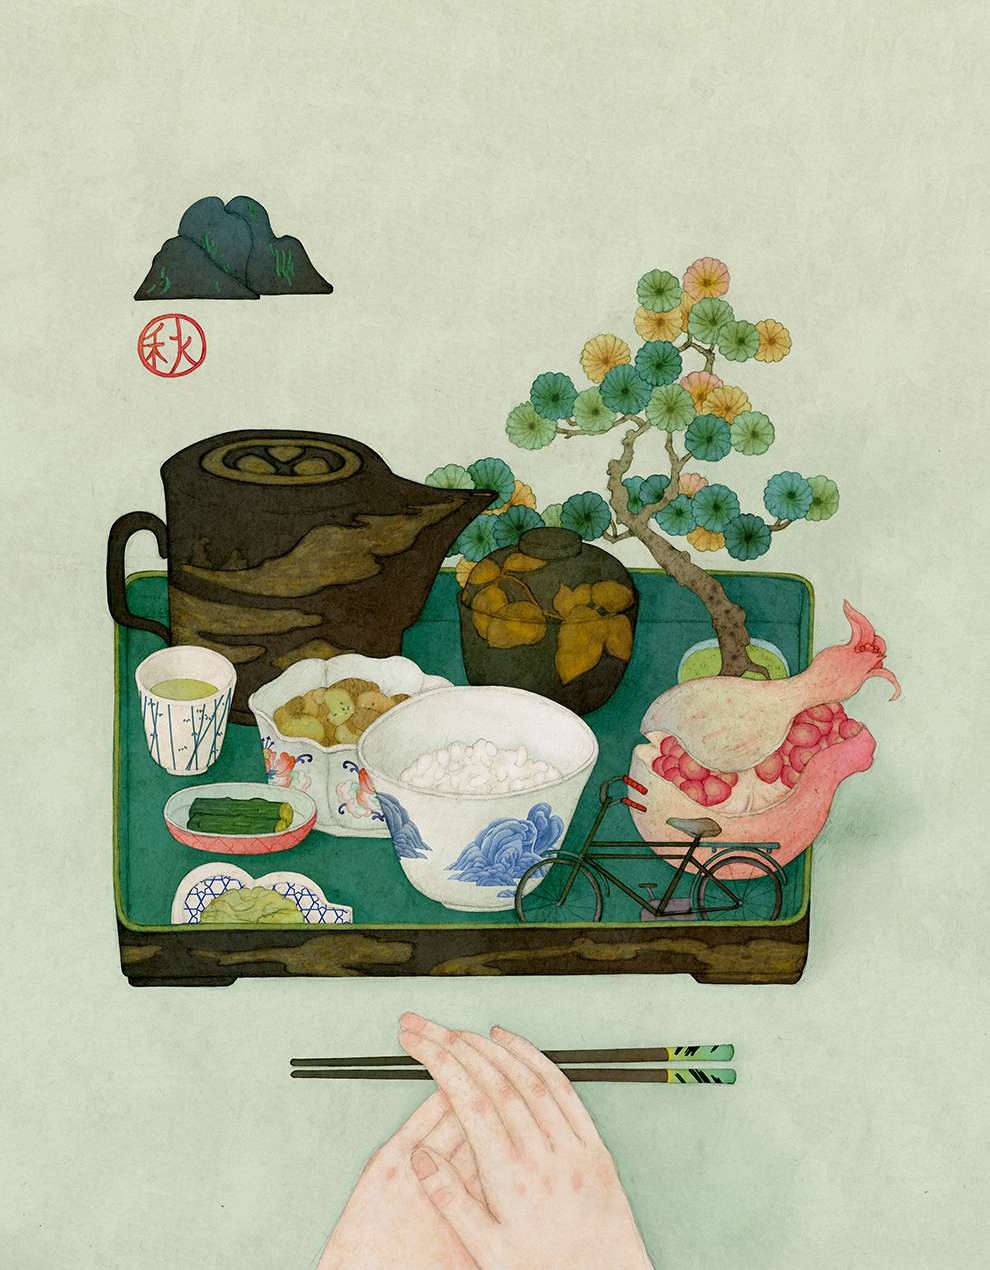 Whooli Chen, Hand painted illustration of a food tray with Japanese food and a banzai